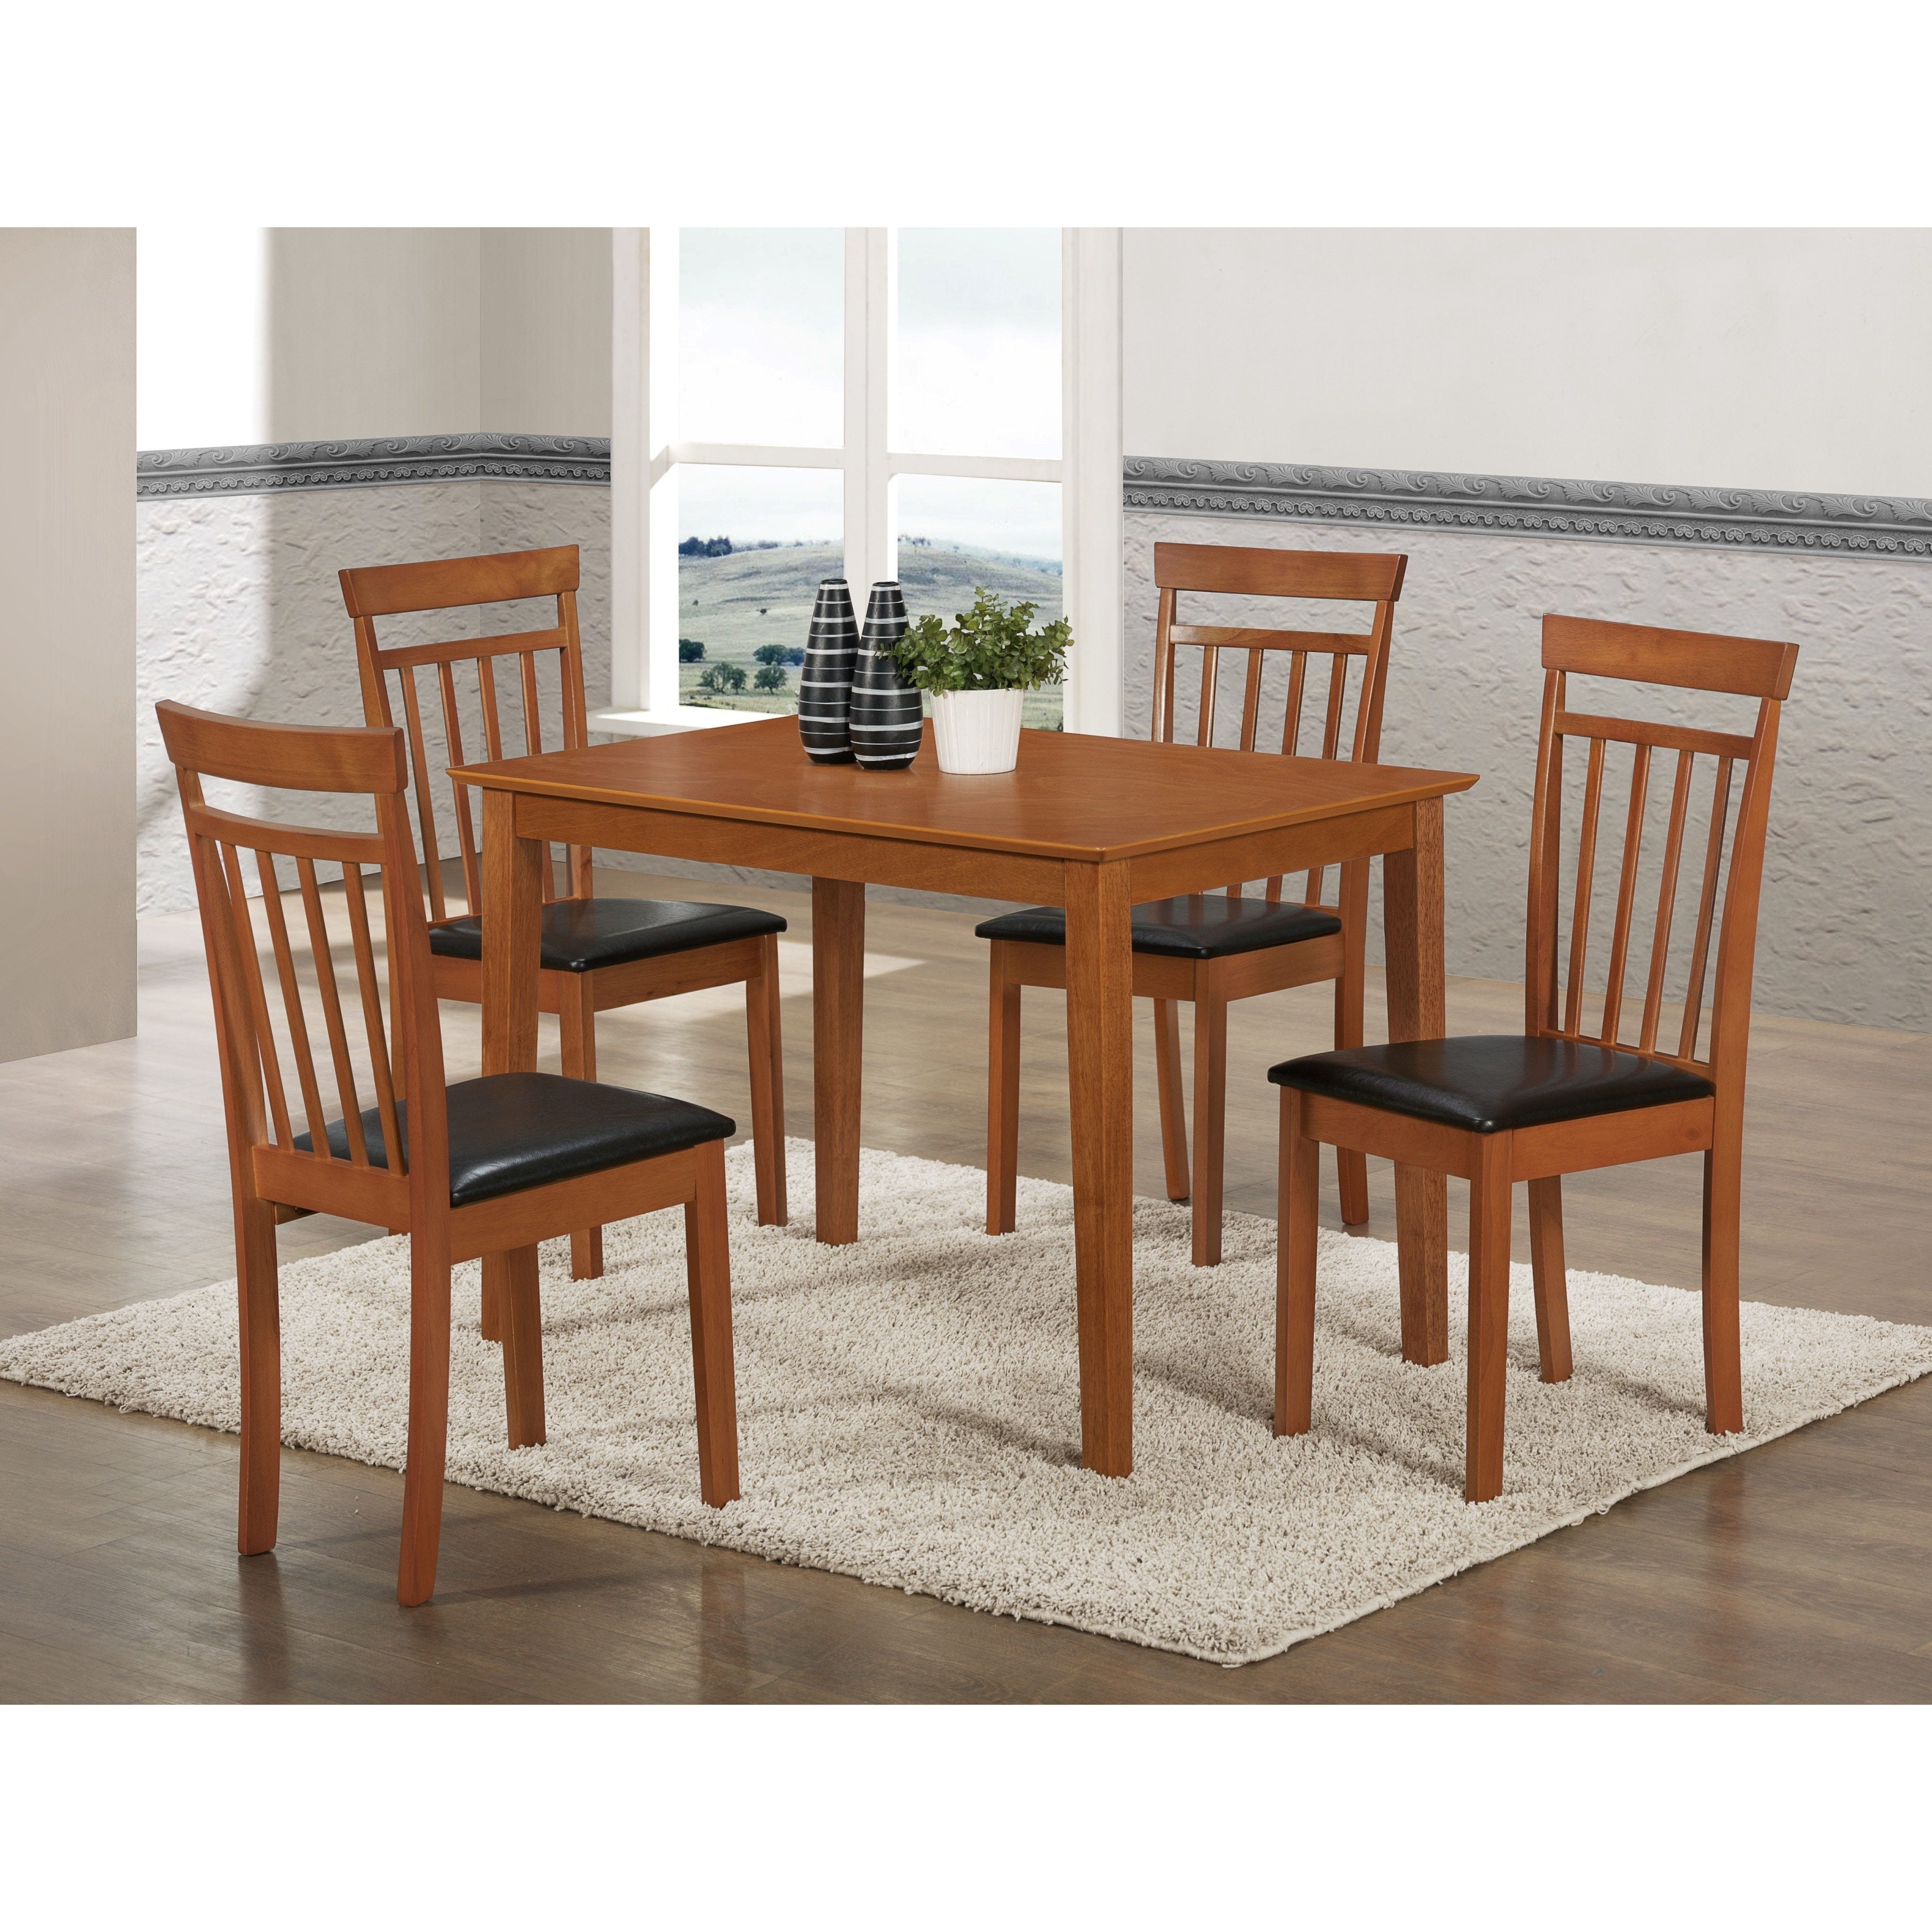 Light Cherry Wood Dining Table Free Shipping Today 10156939